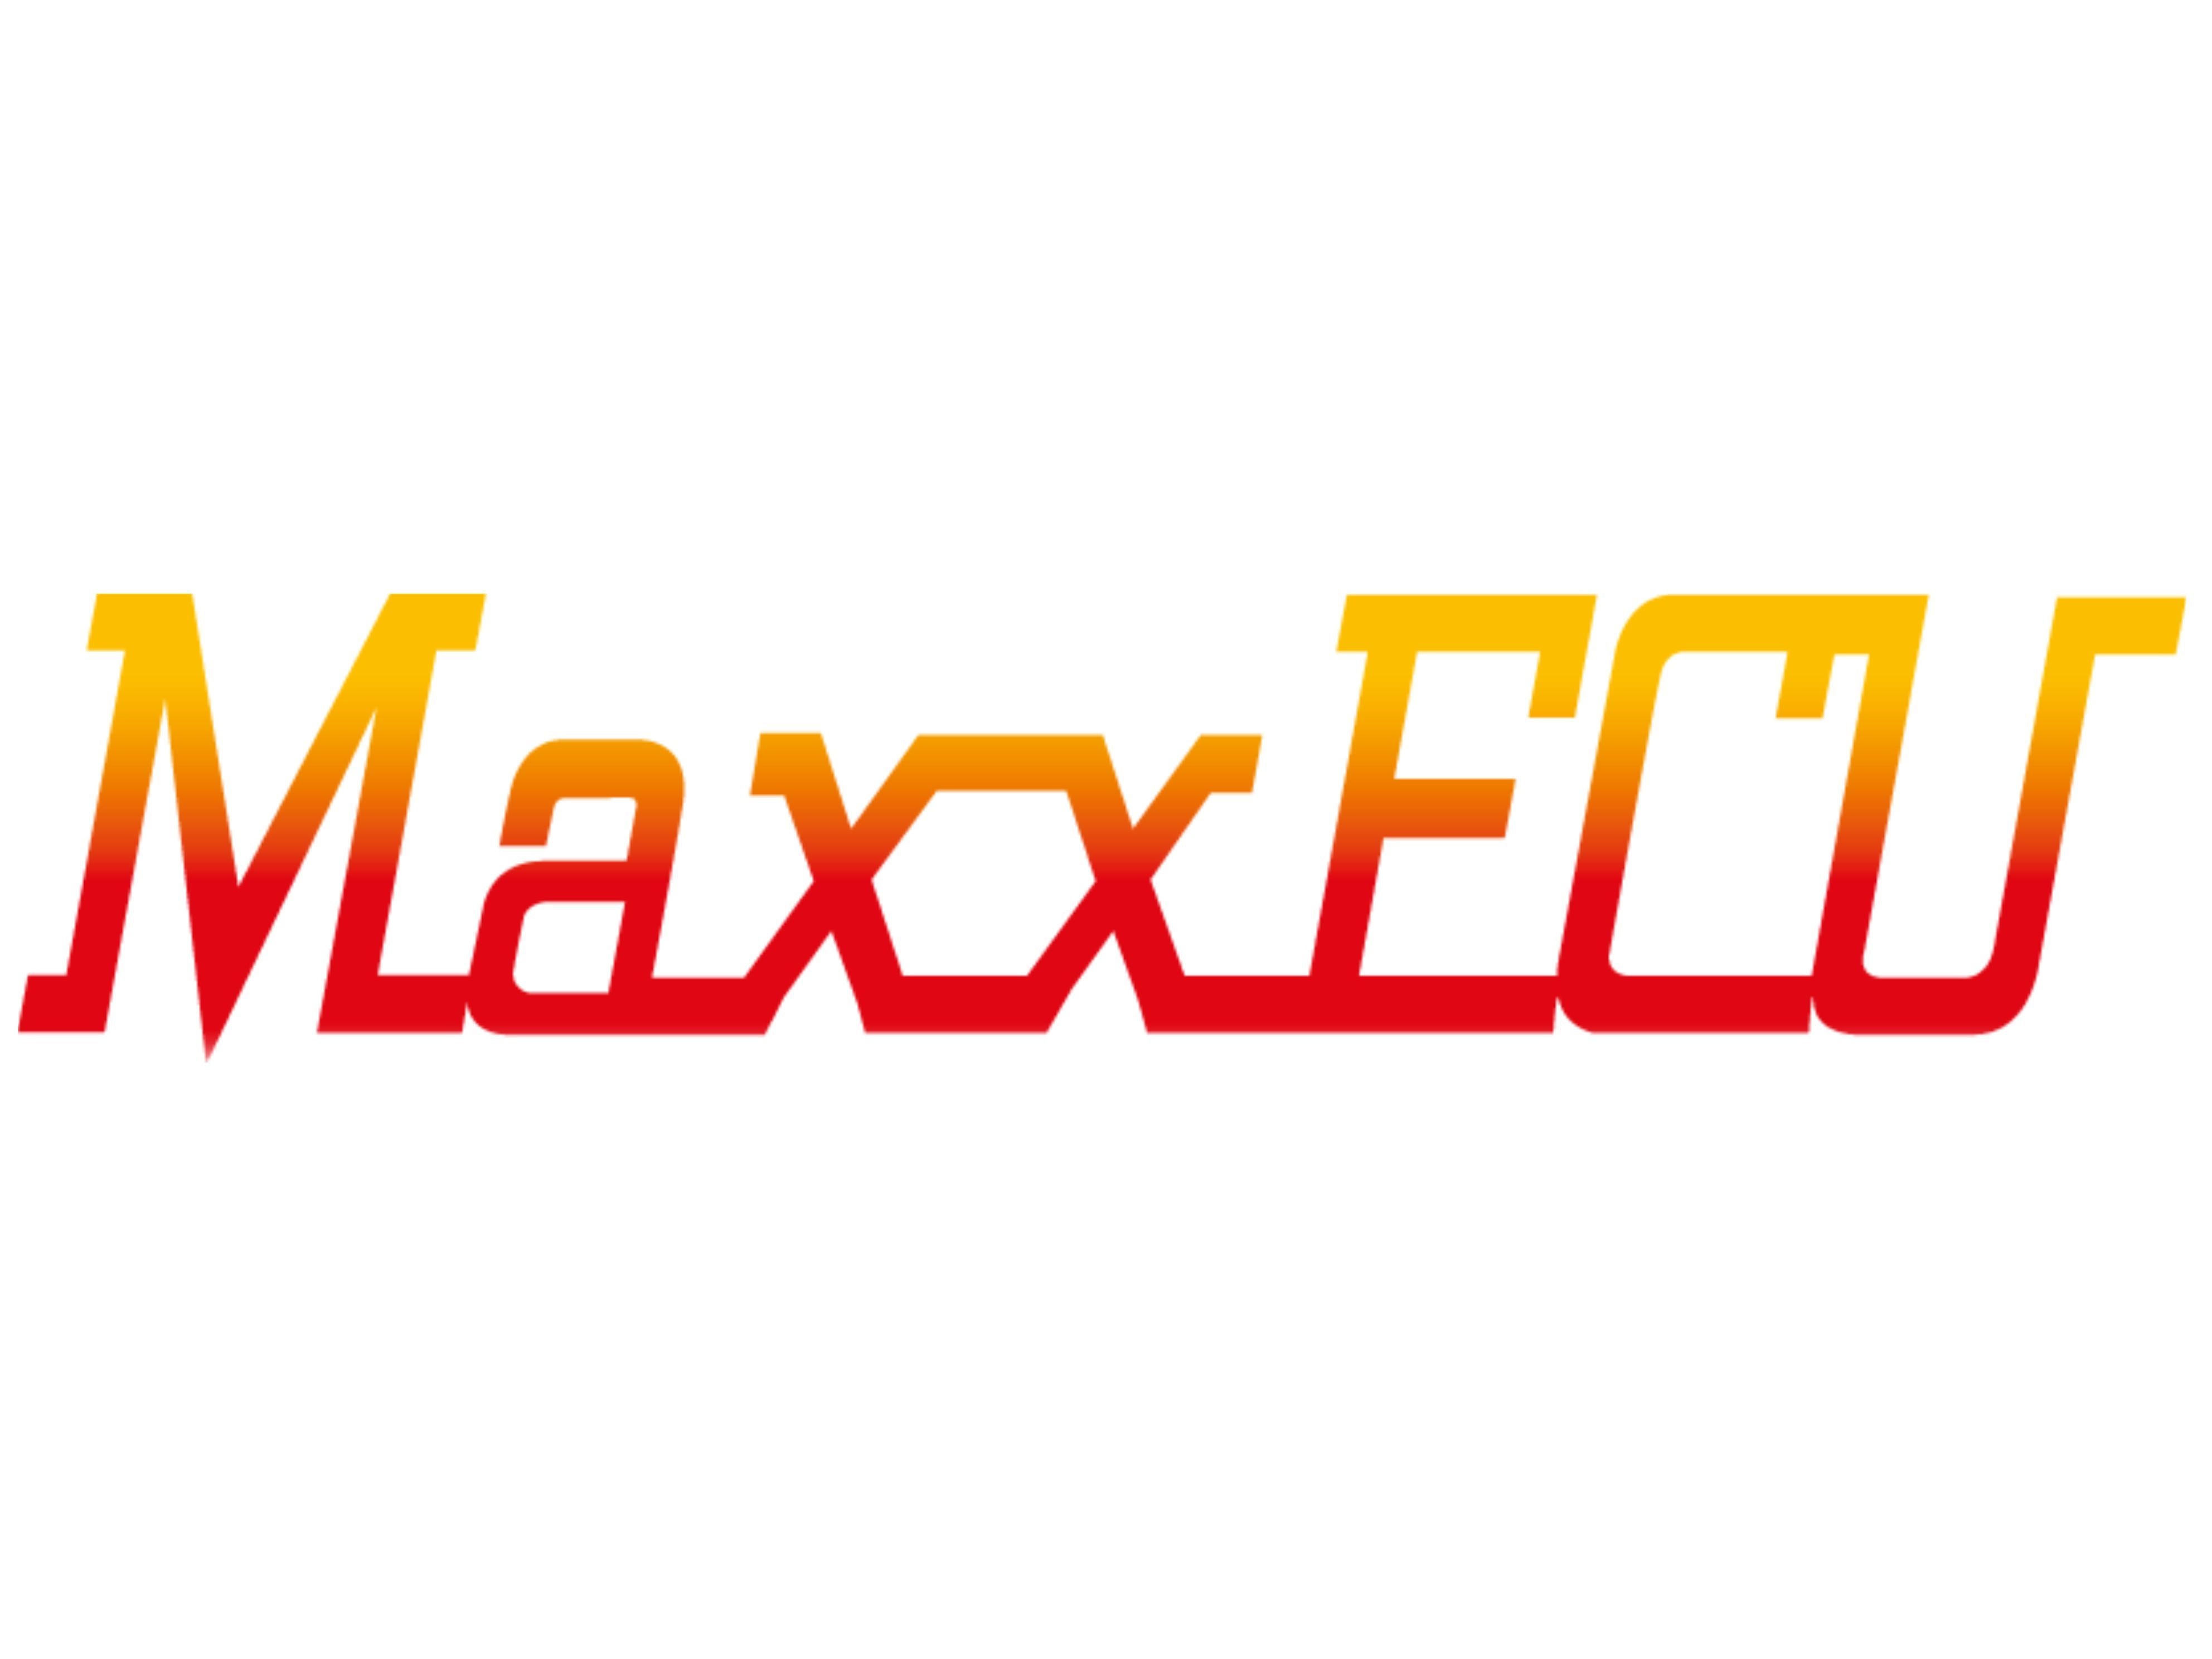 MAXX_ECU_-_Logo_2to3